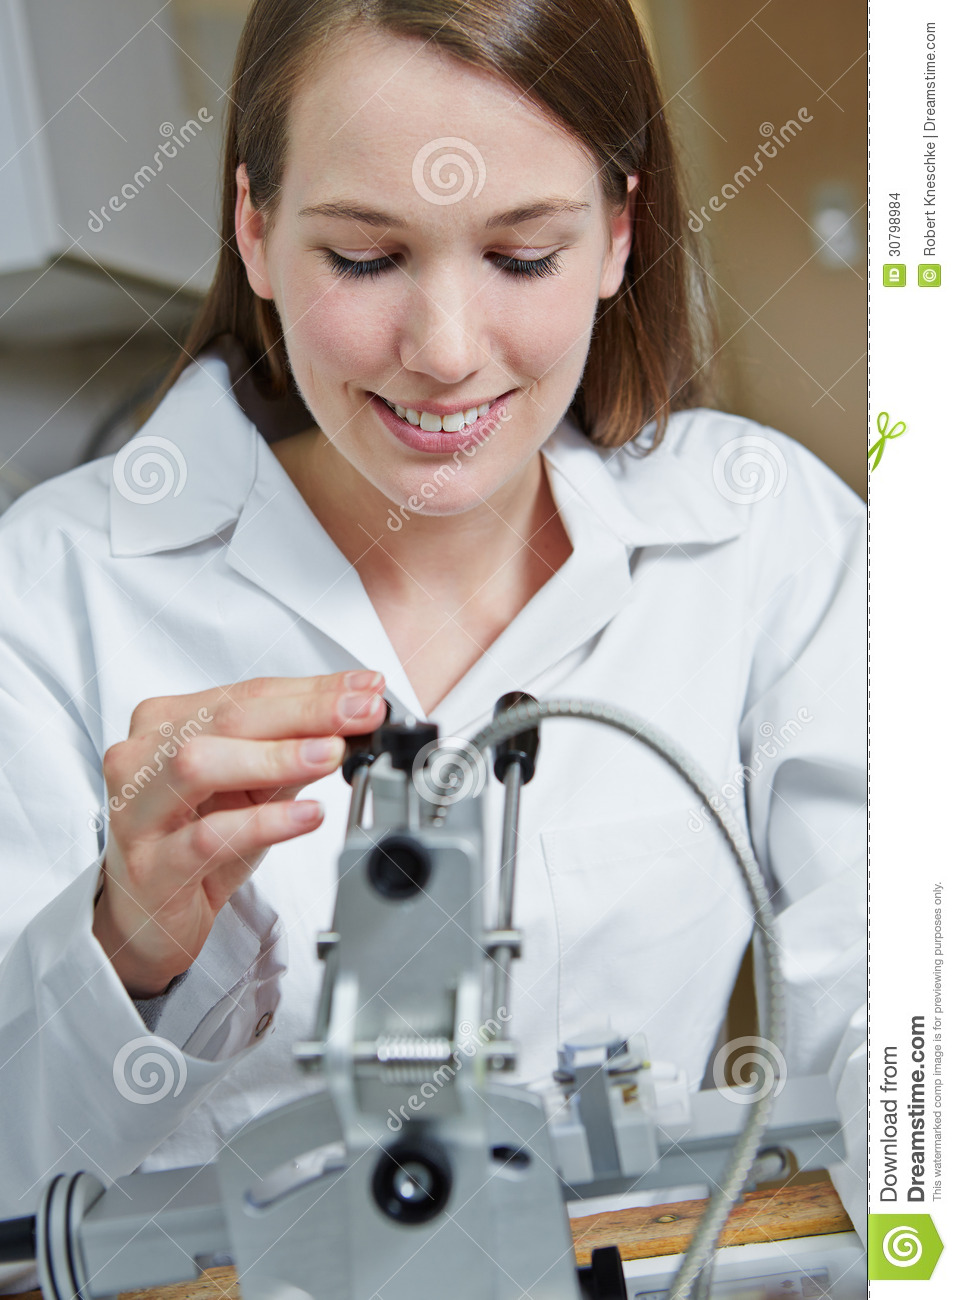 Rimless Glasses Young : Woman At Drilling Machine Stock Images - Image: 30798984